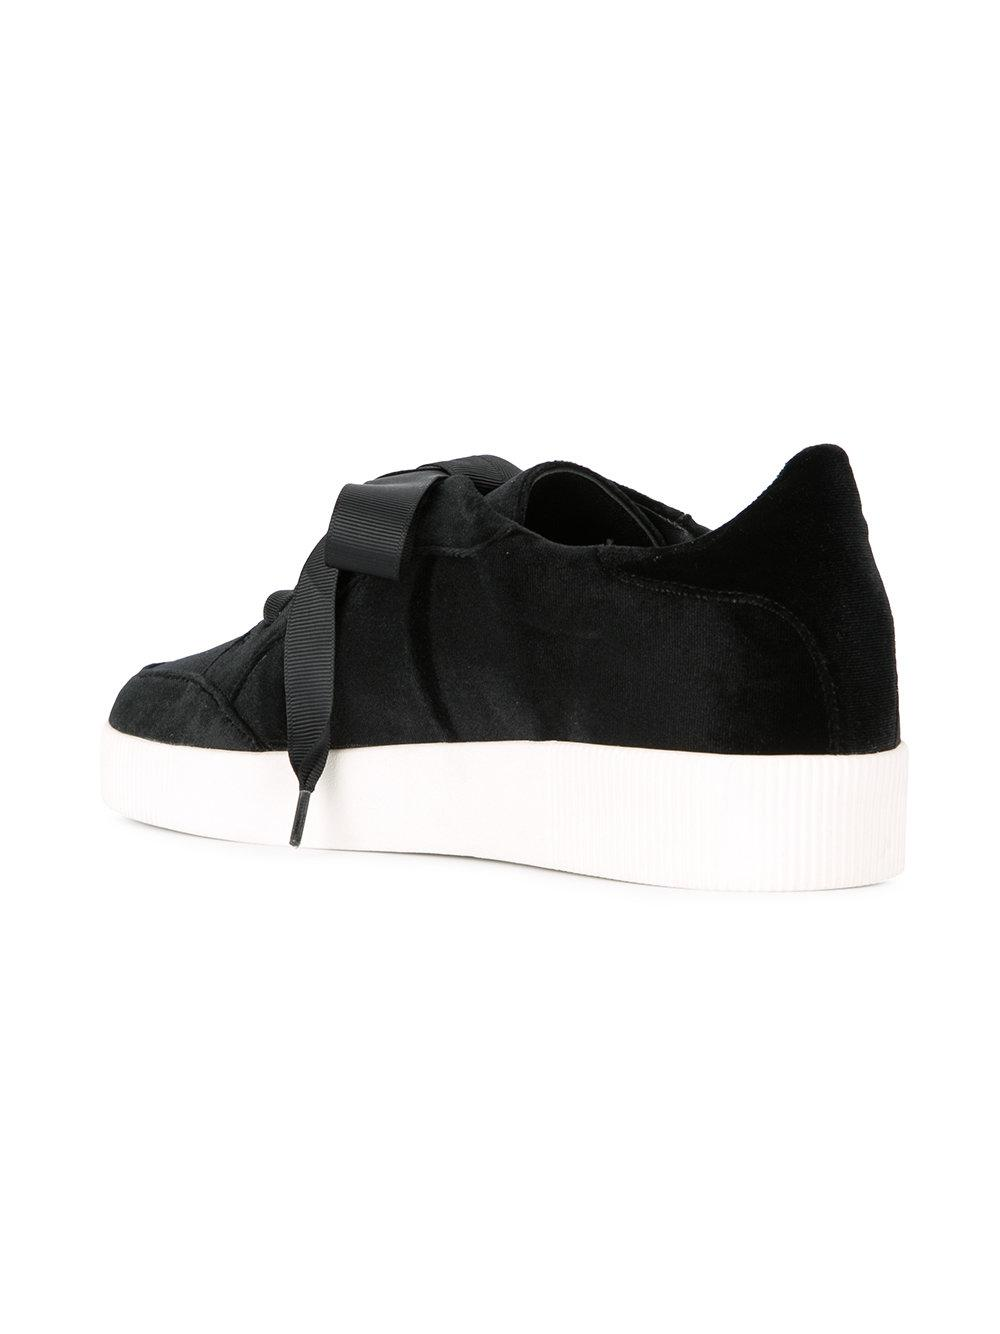 Senso Leather Austin Sneakers in Black